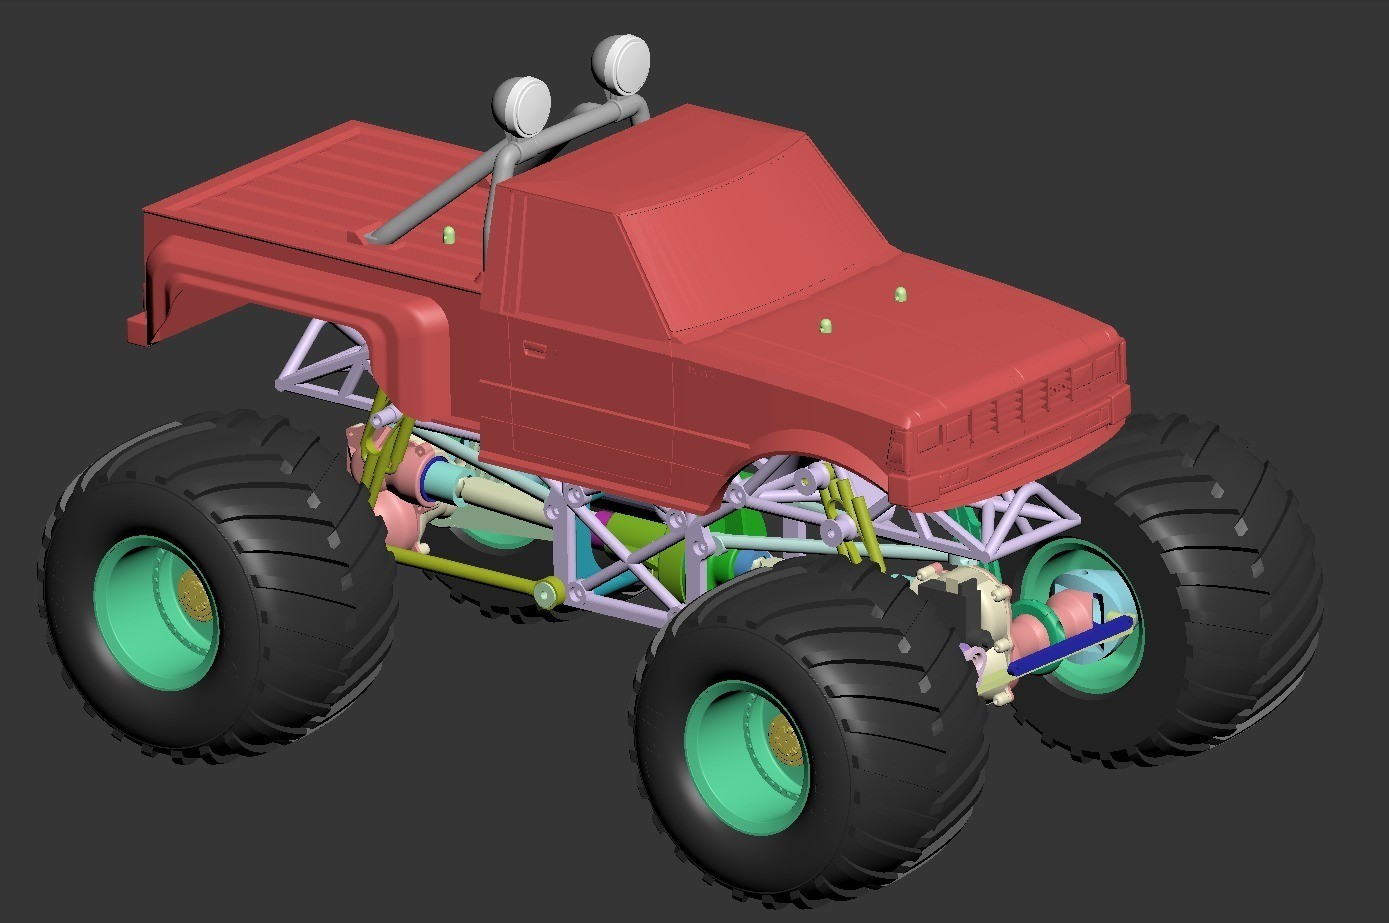 monster07.jpg Download free STL file Fully printable Monster Truck • 3D printer design, tahustvedt